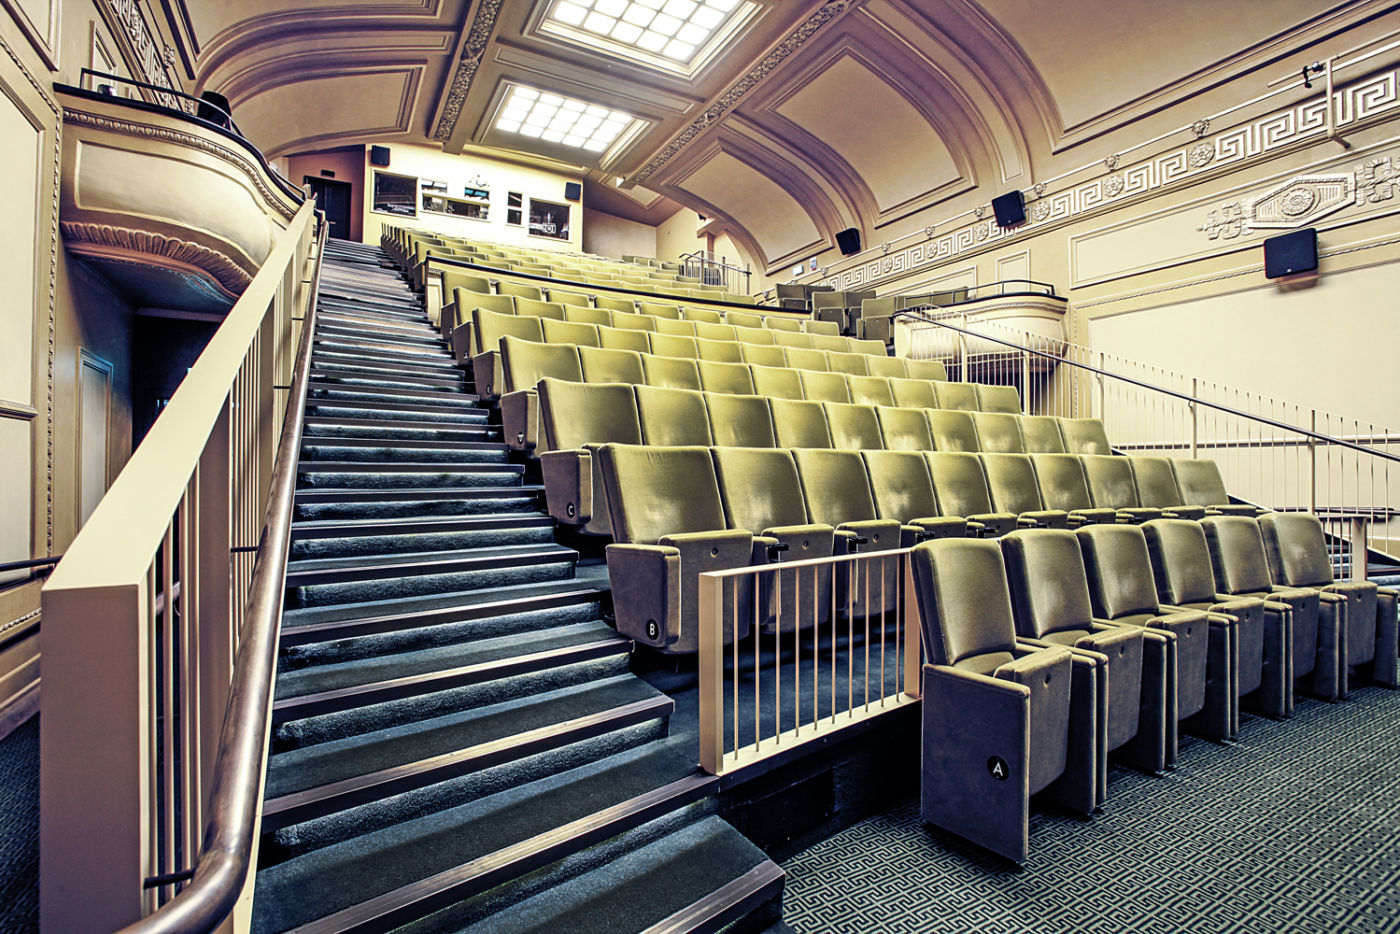 Sideview of cinema seating